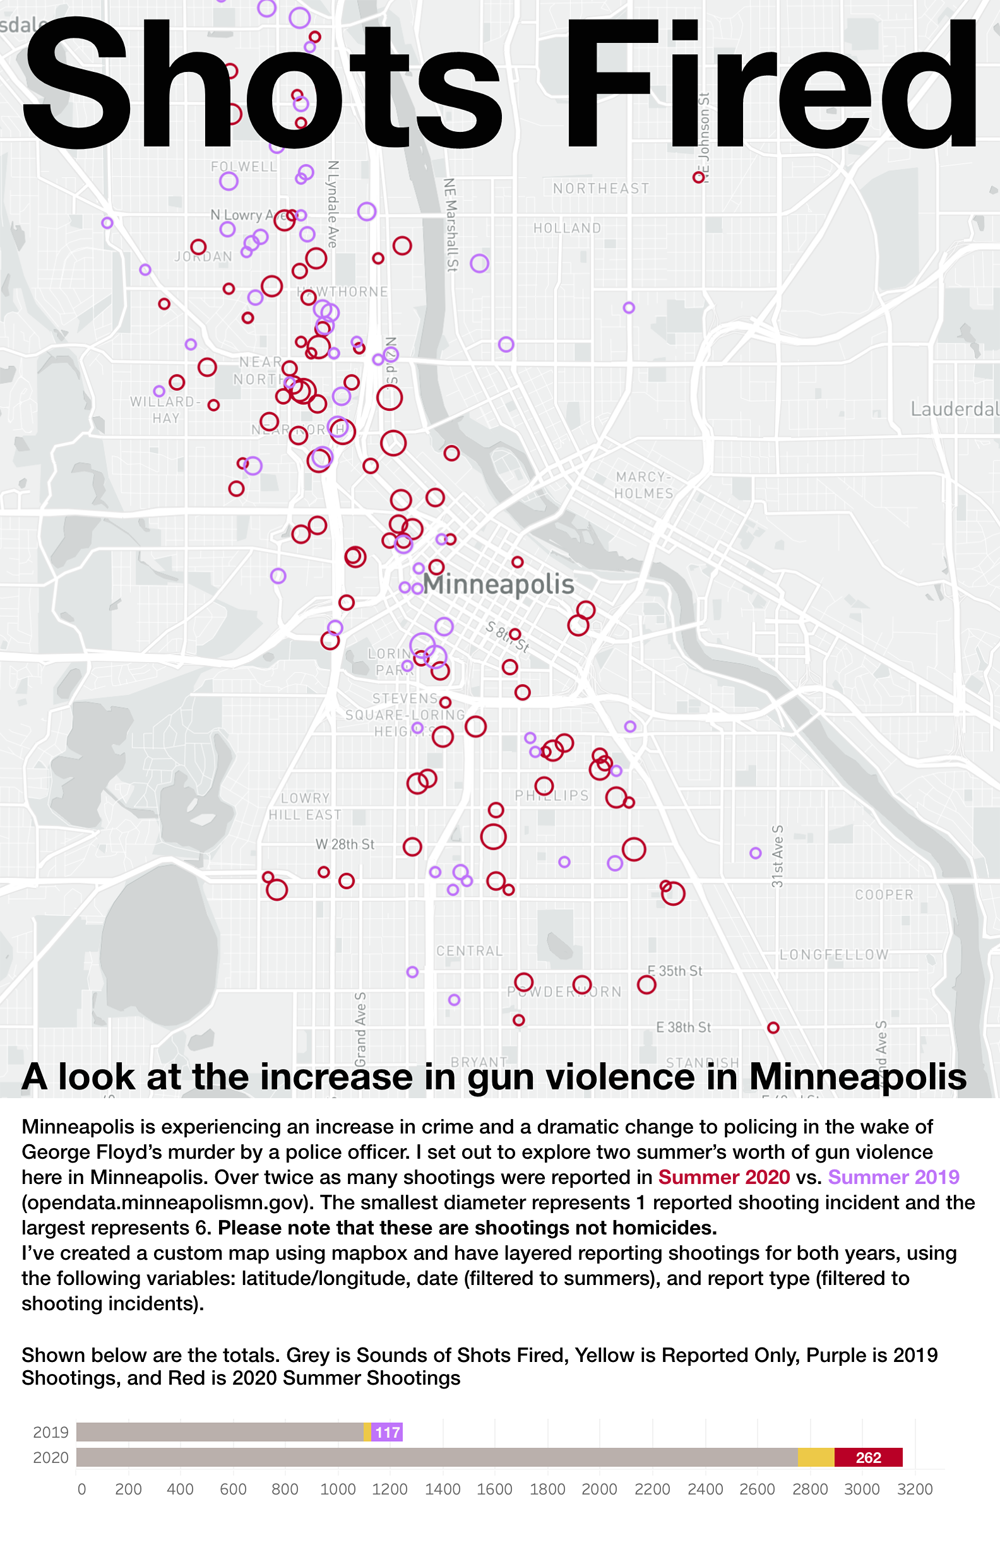 This was designed at tabloid size for print (hence the odd web-layout) Data source: https://opendata.minneapolismn.gov/search?groupIds=79606f50581f4a33b14a19e61c4891f7